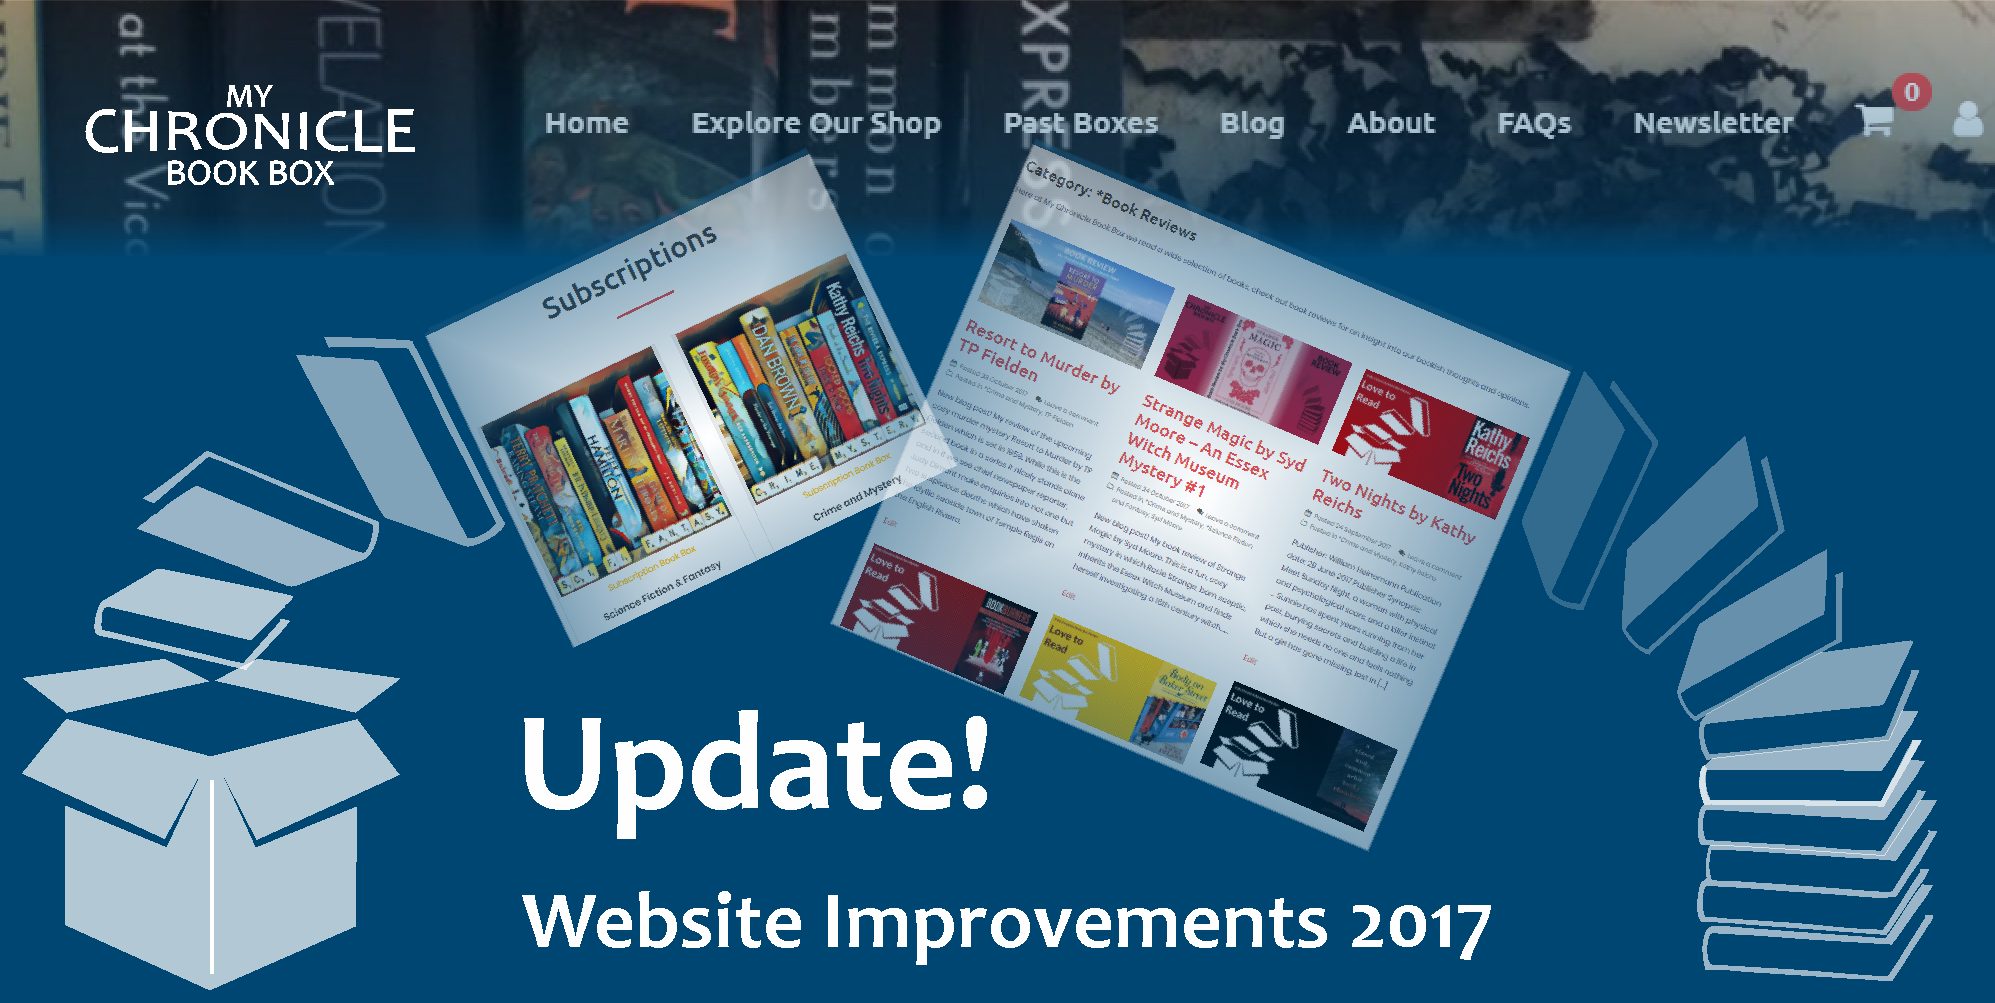 My Chronicle Book Box Website Improvements 2017 Banner